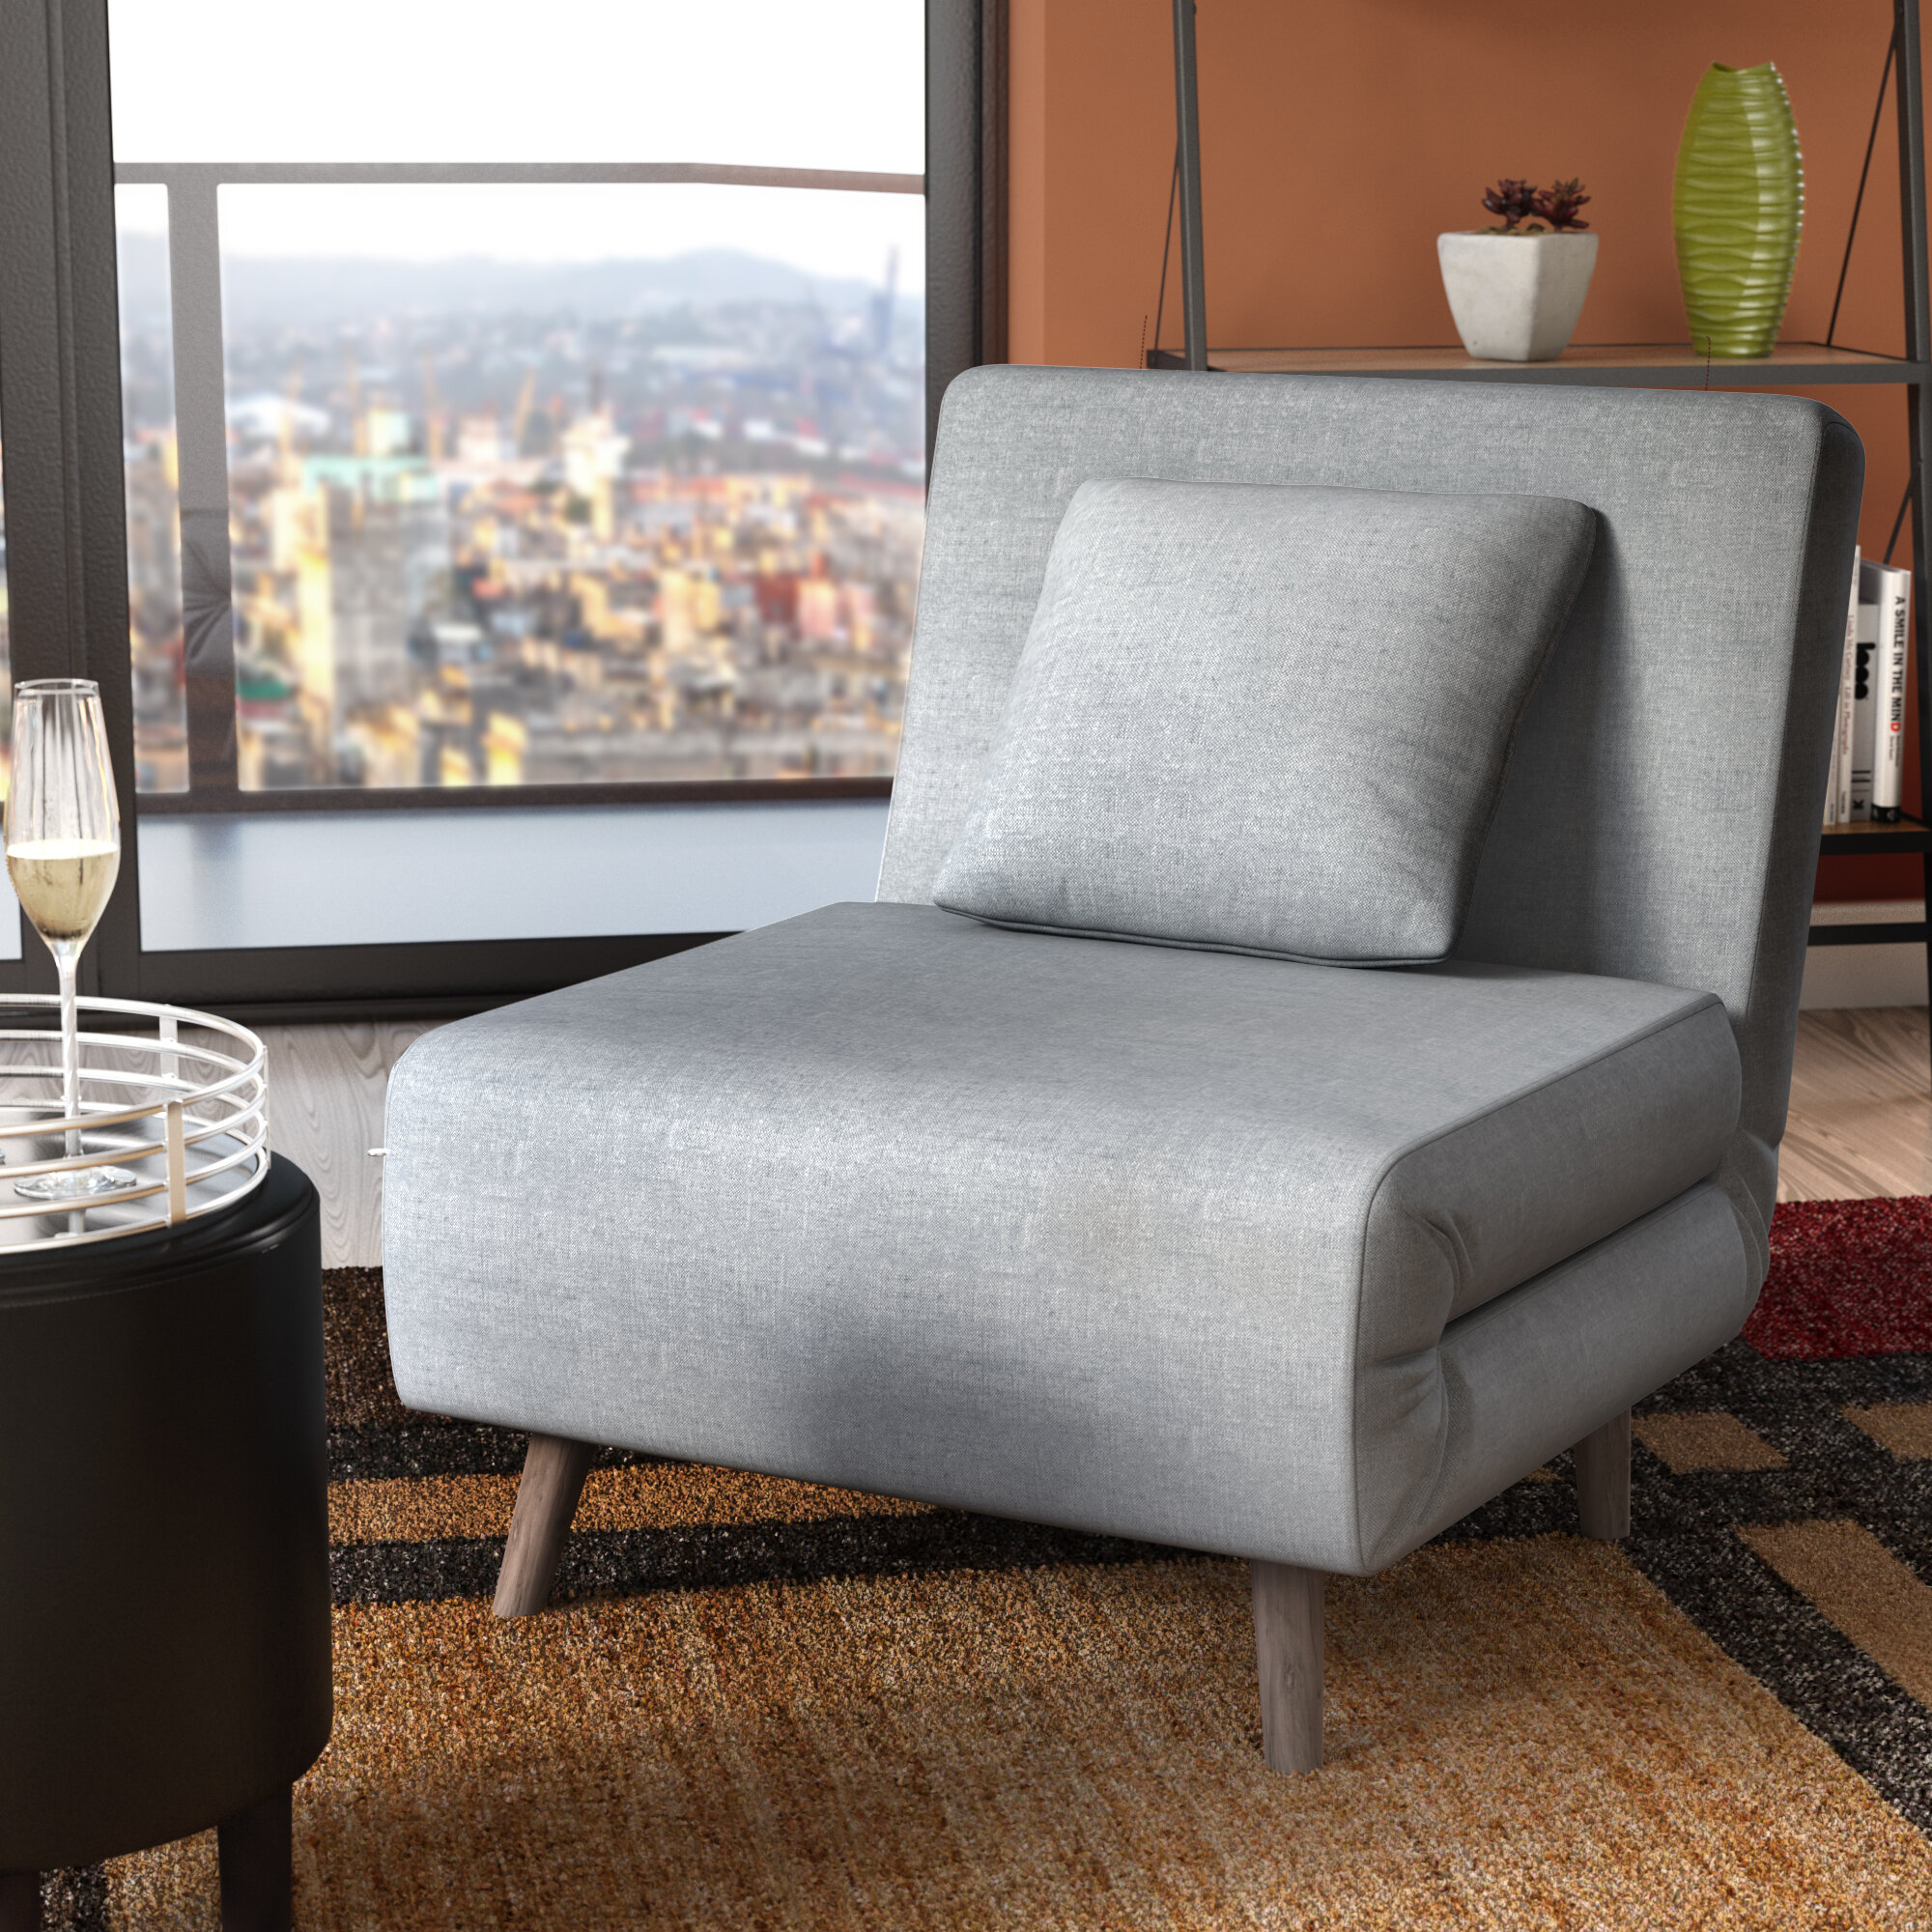 Picture of: Single Sofa Bed Chair You Ll Love In 2020 Visualhunt